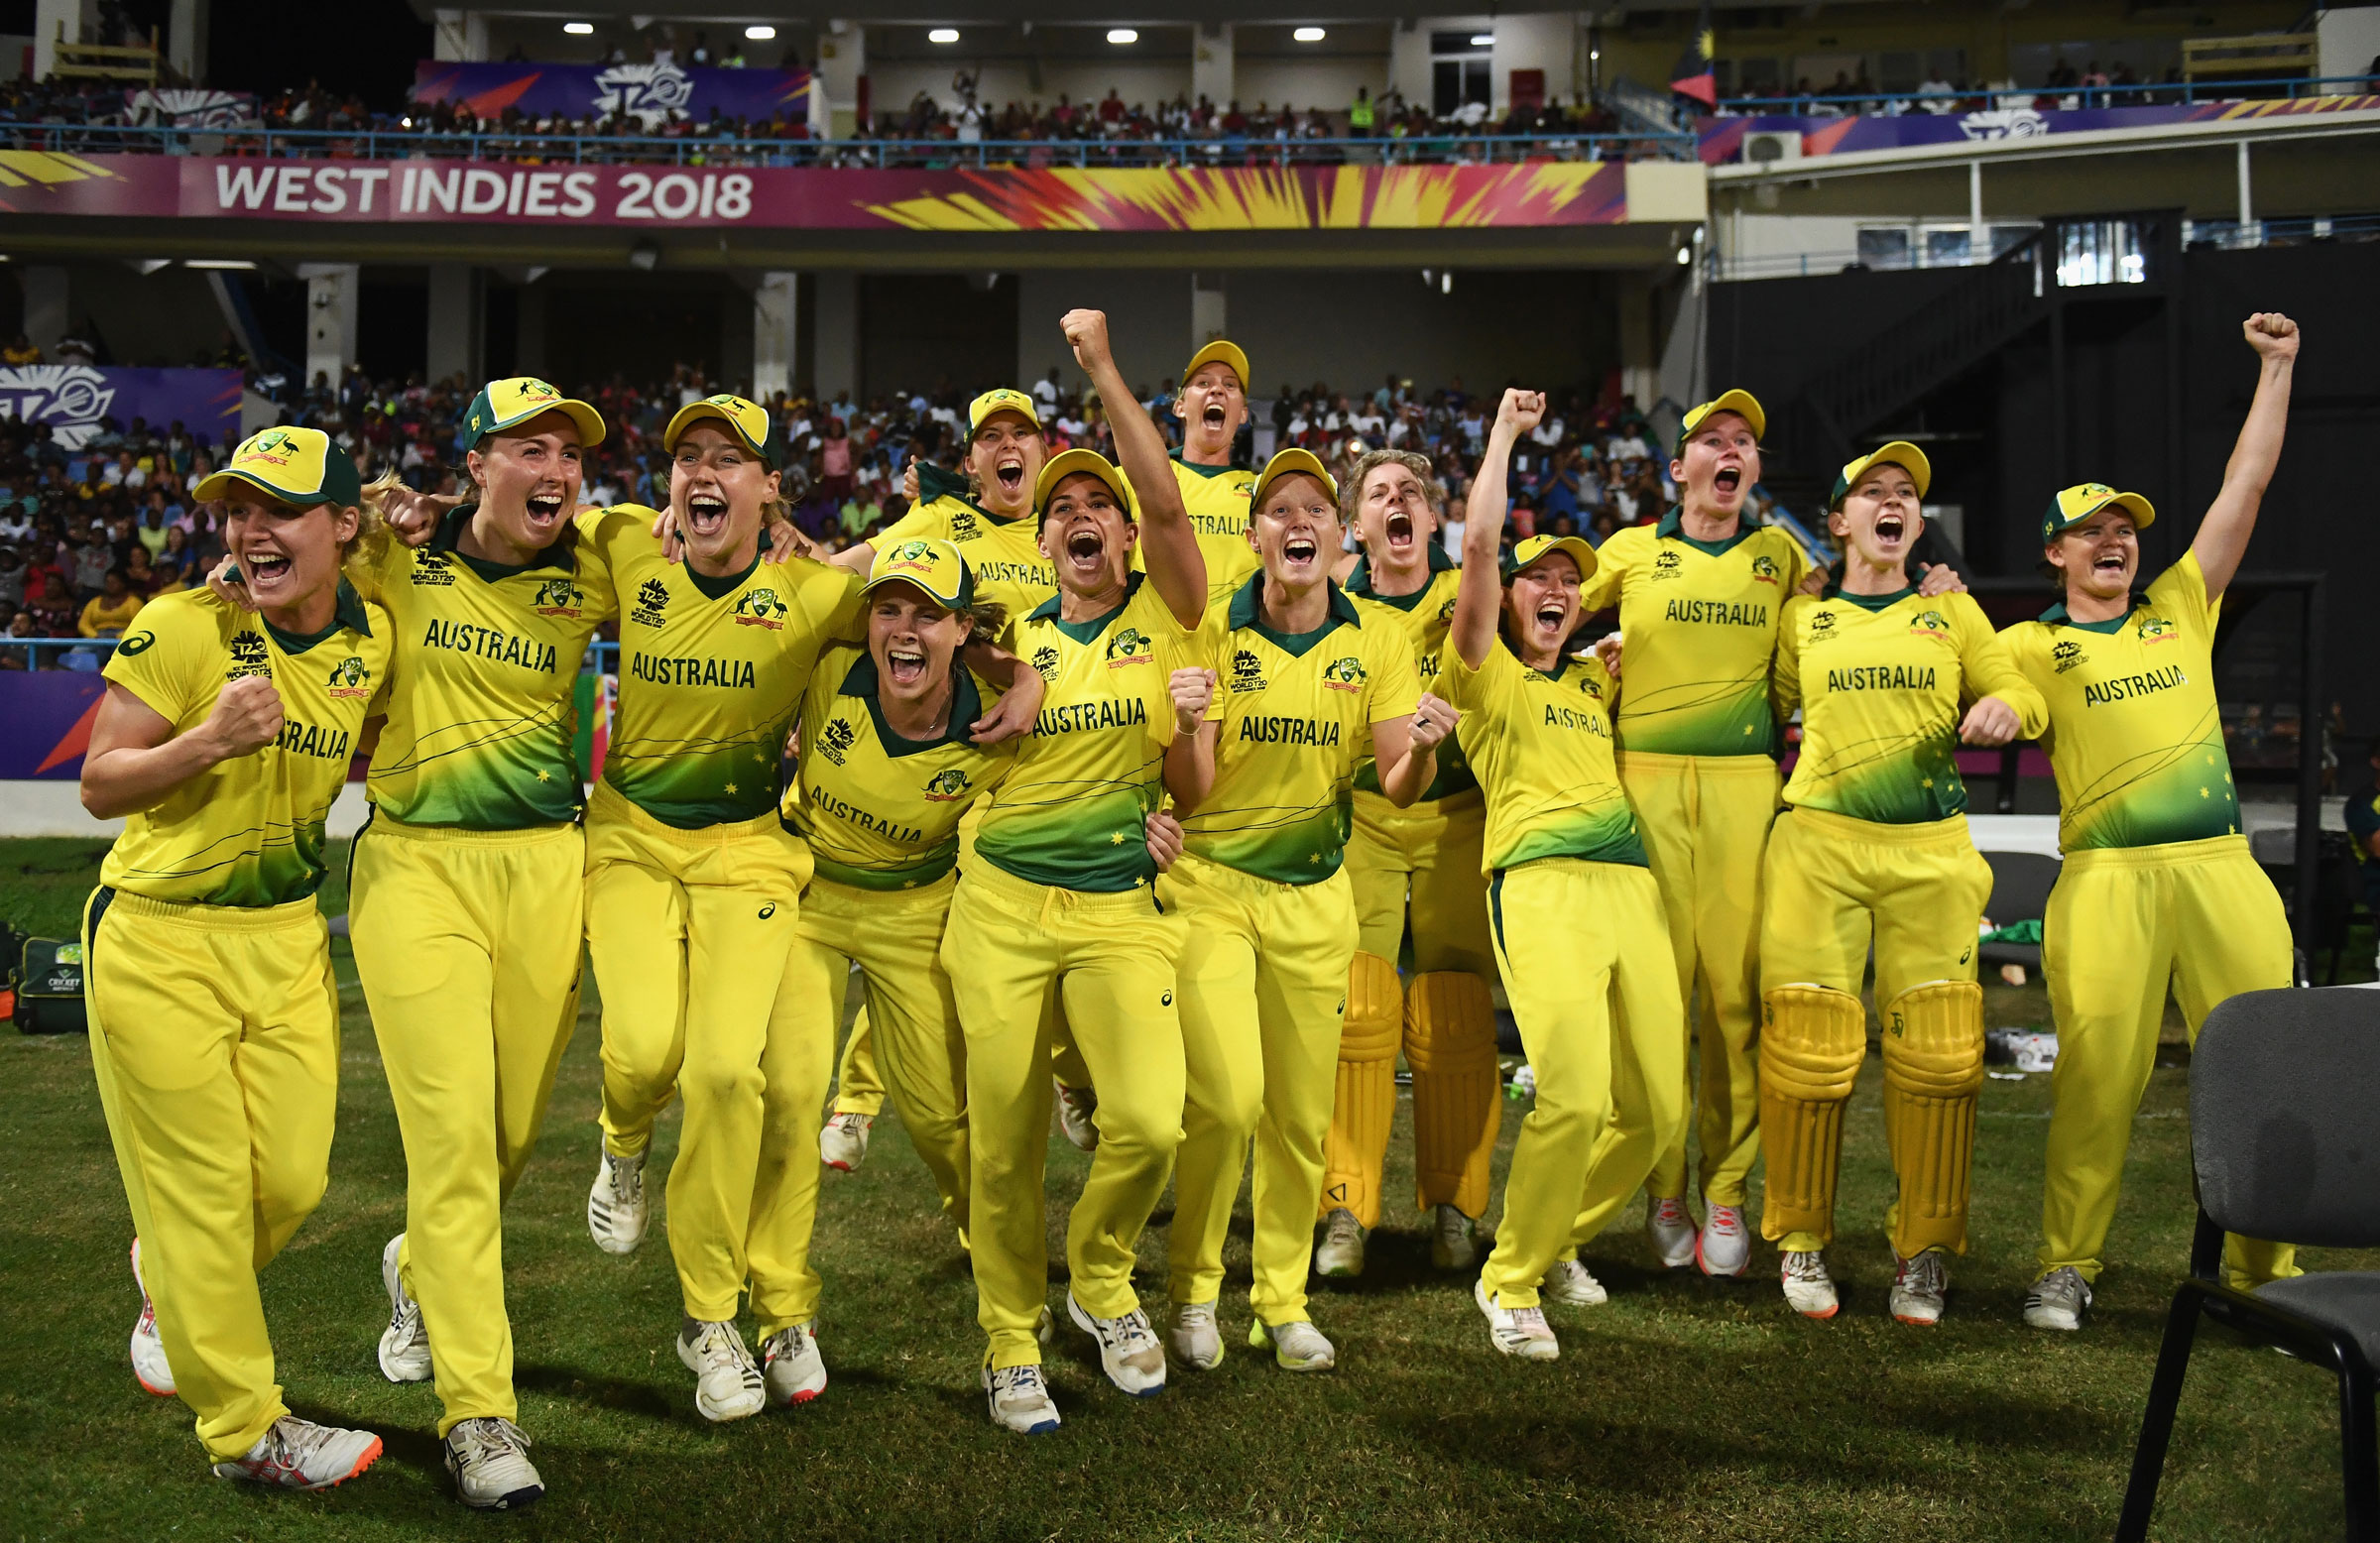 Molineux was part of Australia's World T20 winning squad // Getty